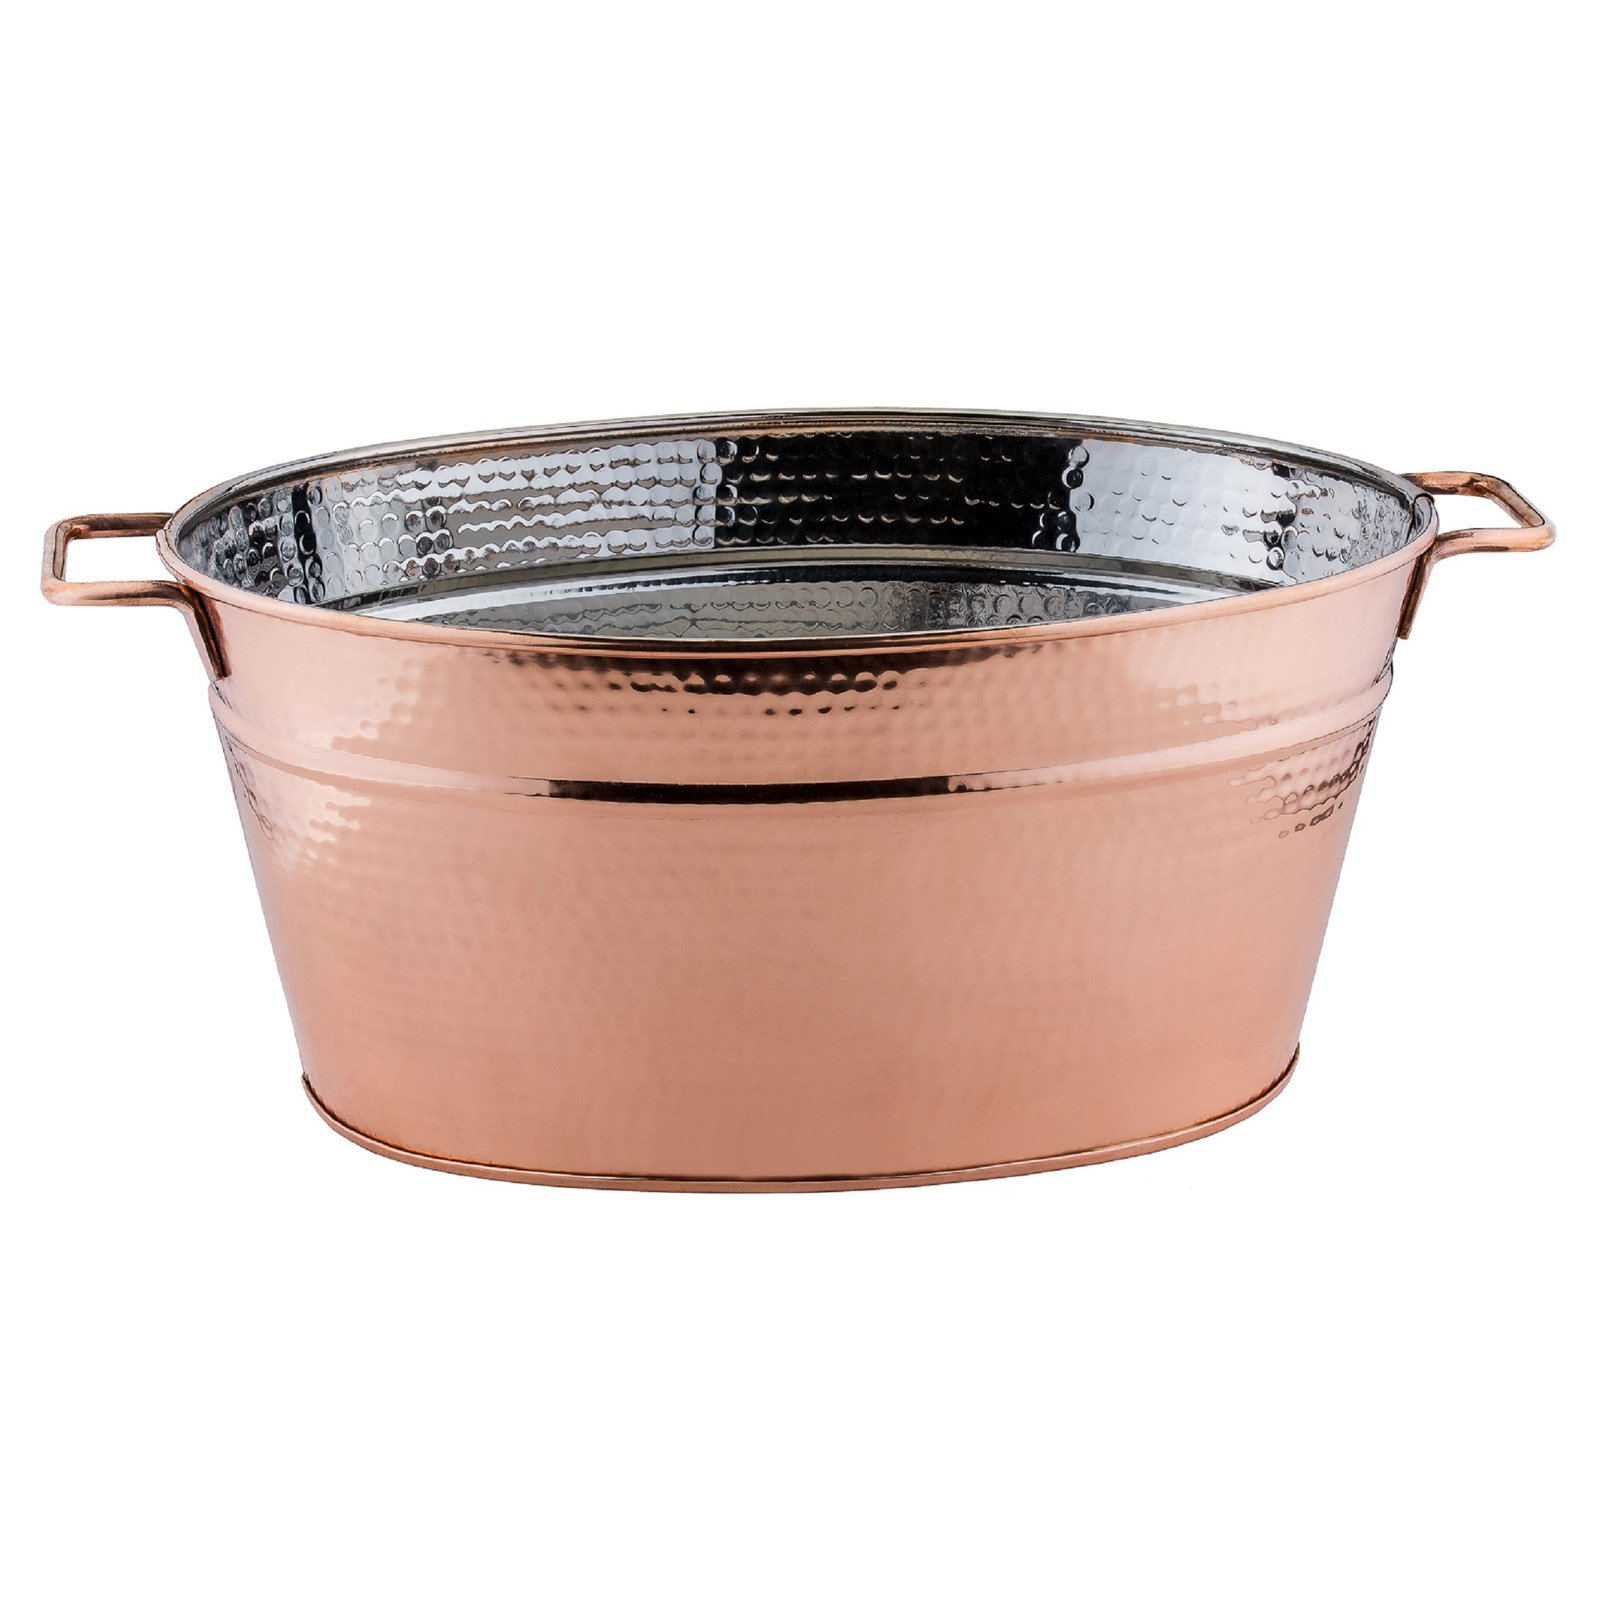 5¾ Gallon Hammered Copper Oval Beverage Tub